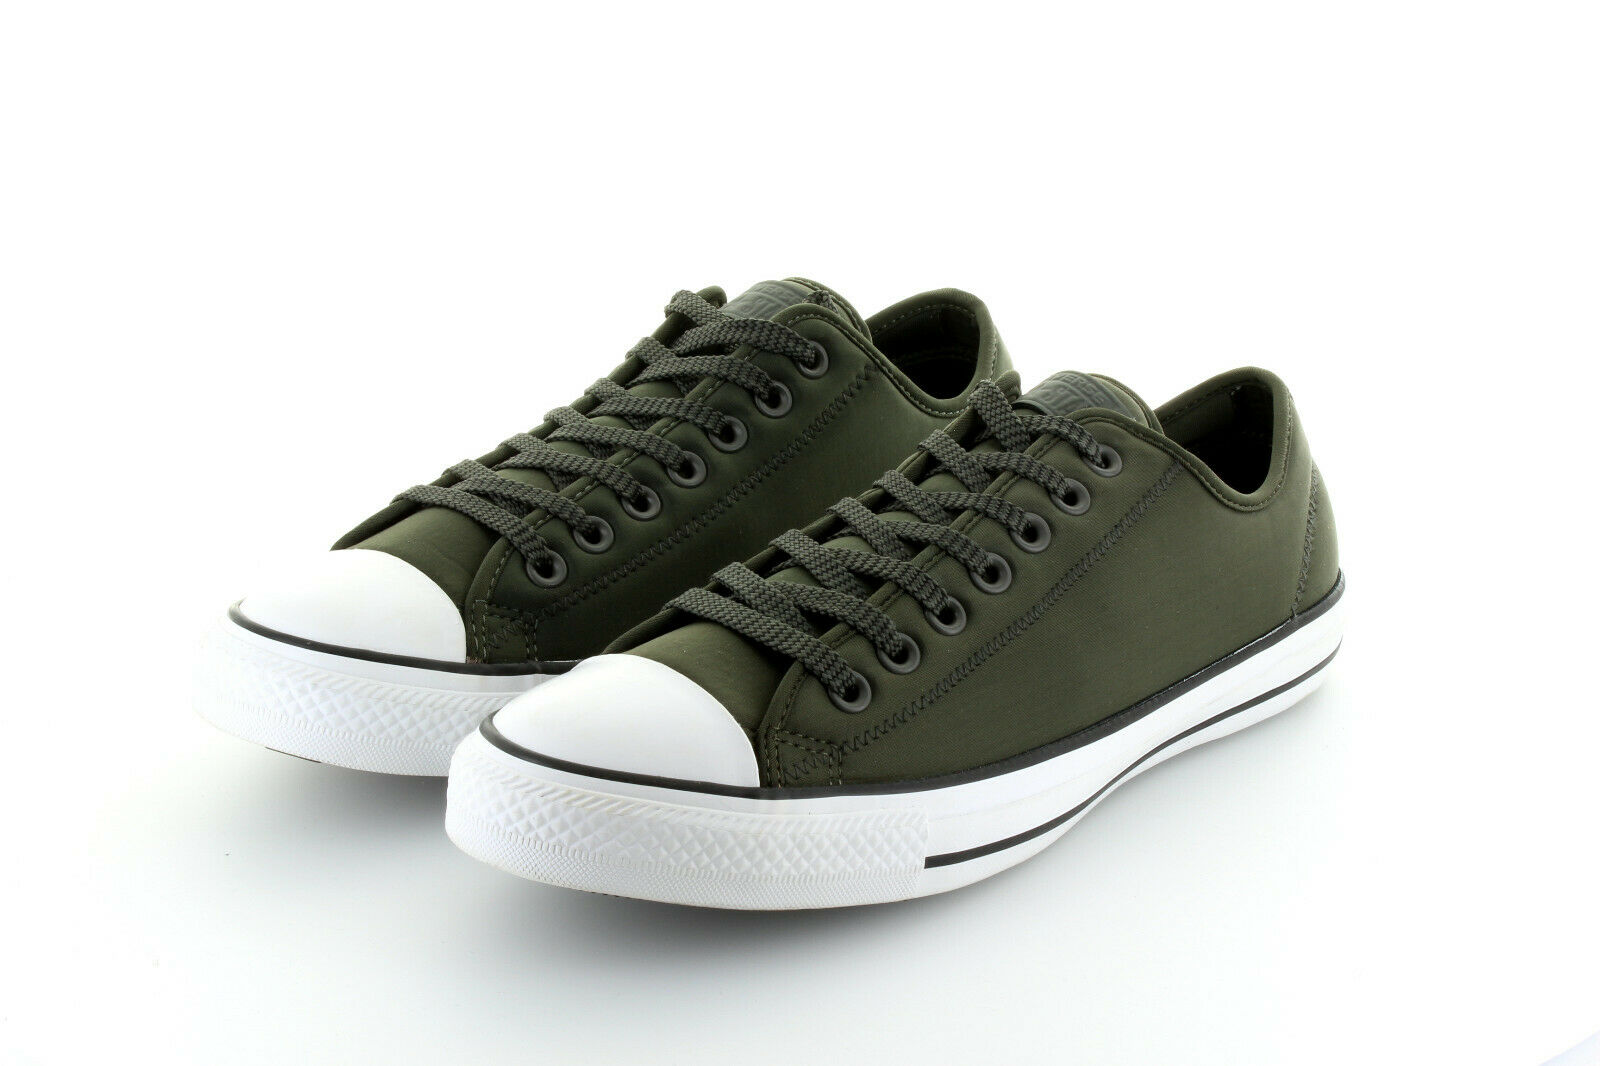 Converse Chuck Taylor AS Ox Olive Neoprene 42,5 43,5 US 9